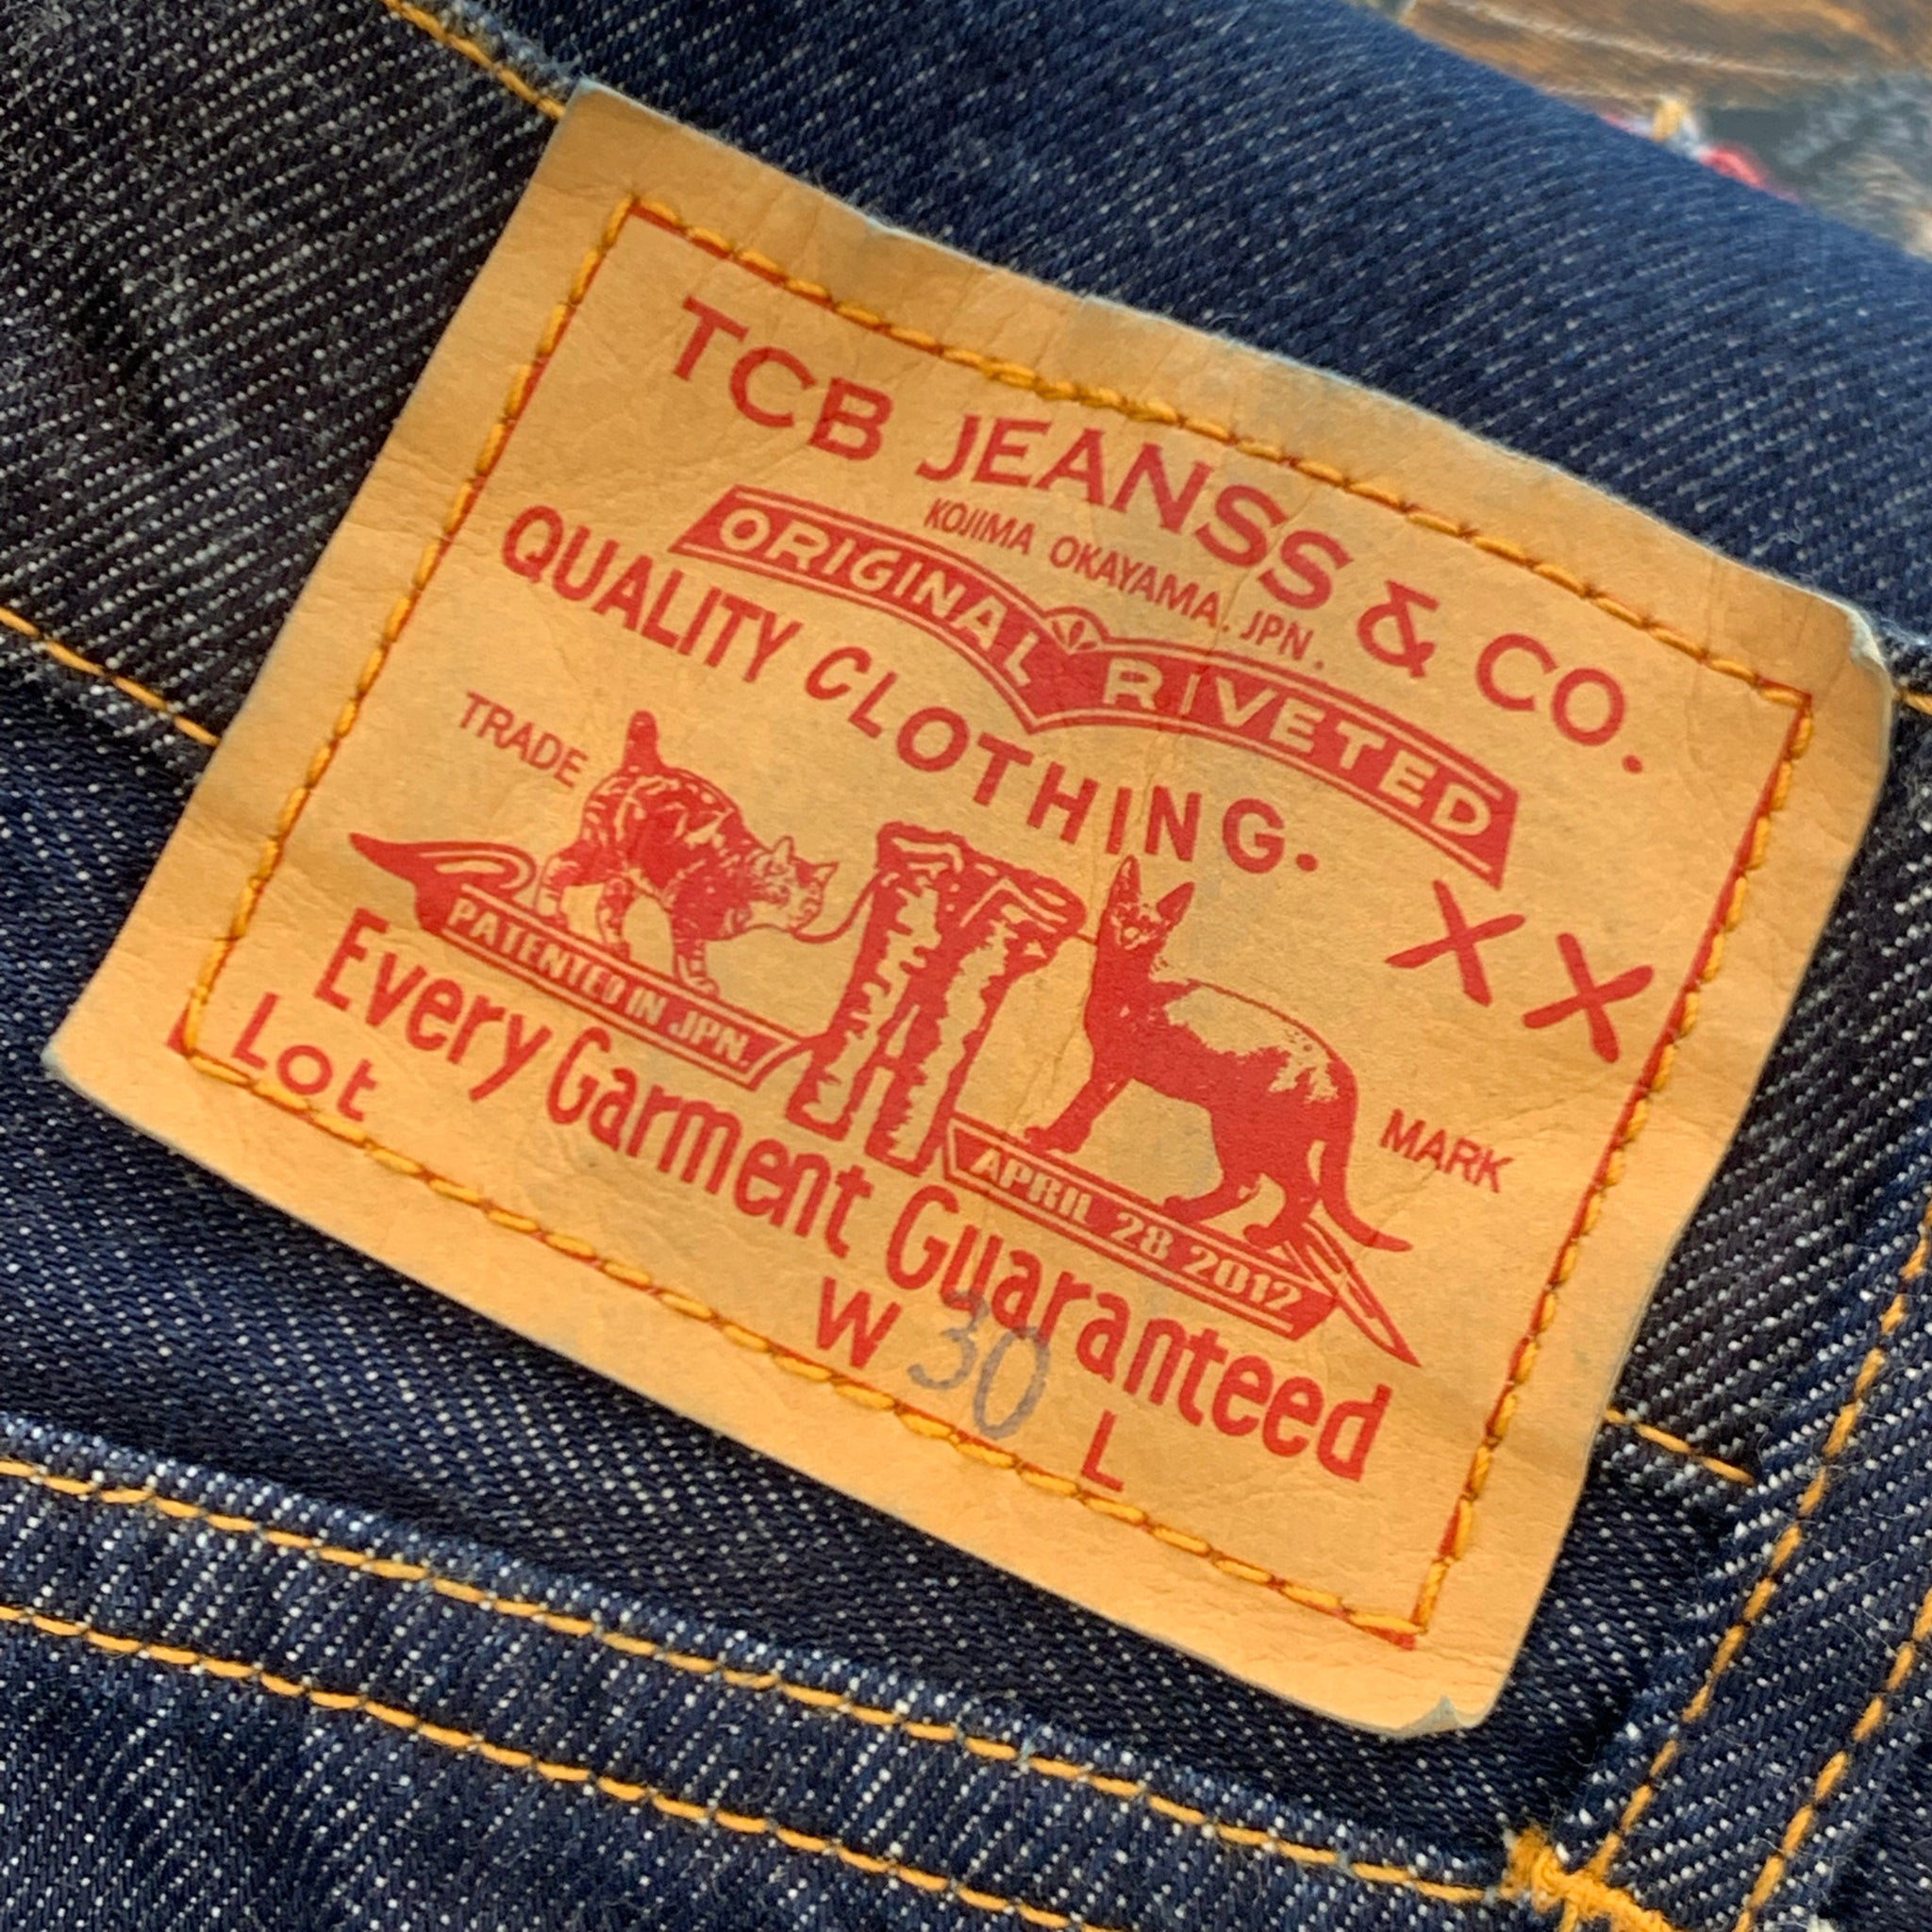 TCB - Type 505 Jeans